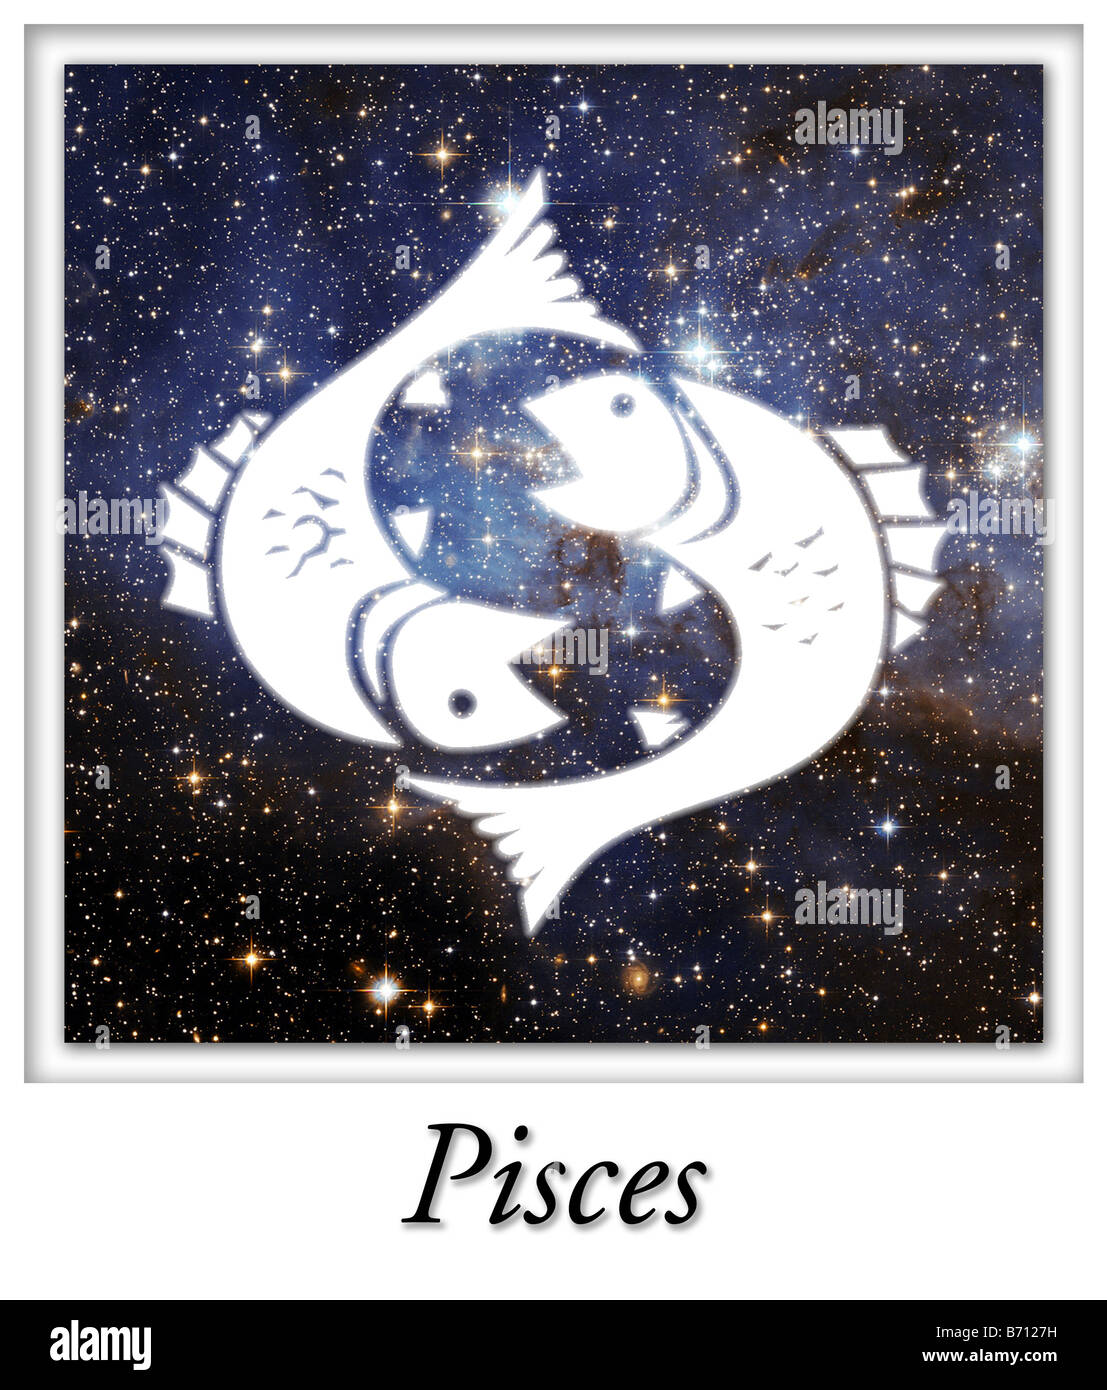 Pisces Astrological Astrology Horoscope Birth Sign - Stock Image